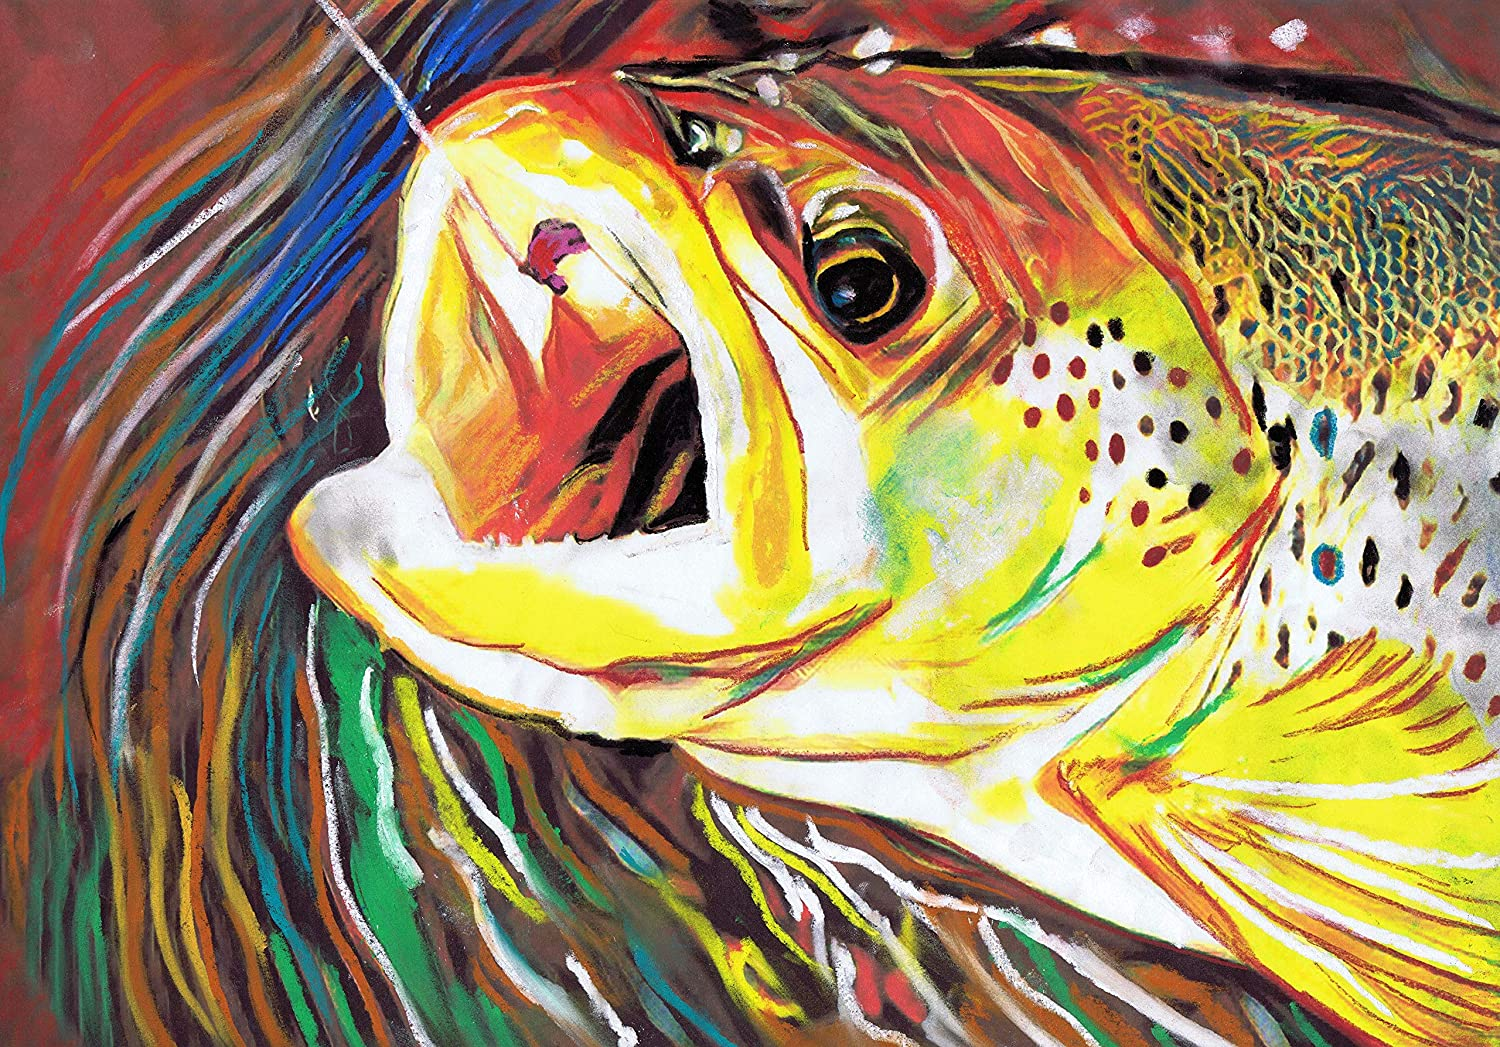 Fly Fishing Trout Art, Pastel Painting Wall Art Print, Hand Signed Fishing Gift By Jack Tarpon, Trout Fisherman Gift, Fish Decor, Colorful Fisherman Gift